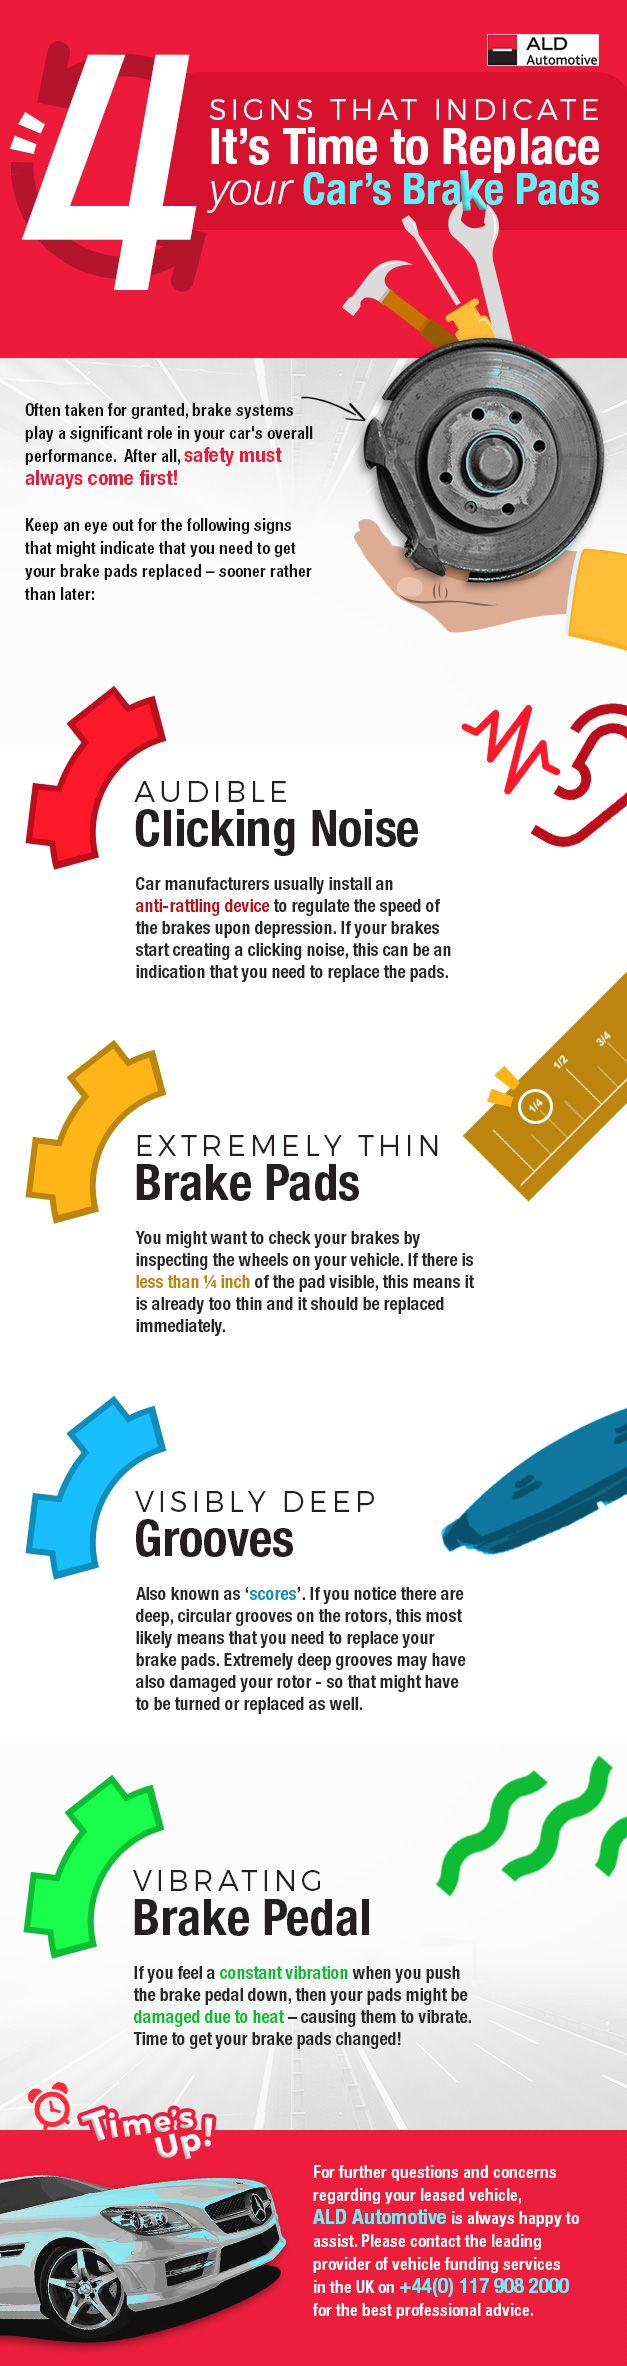 4 Signs that Indicate it's Time to Replace your Car's Brake Pads